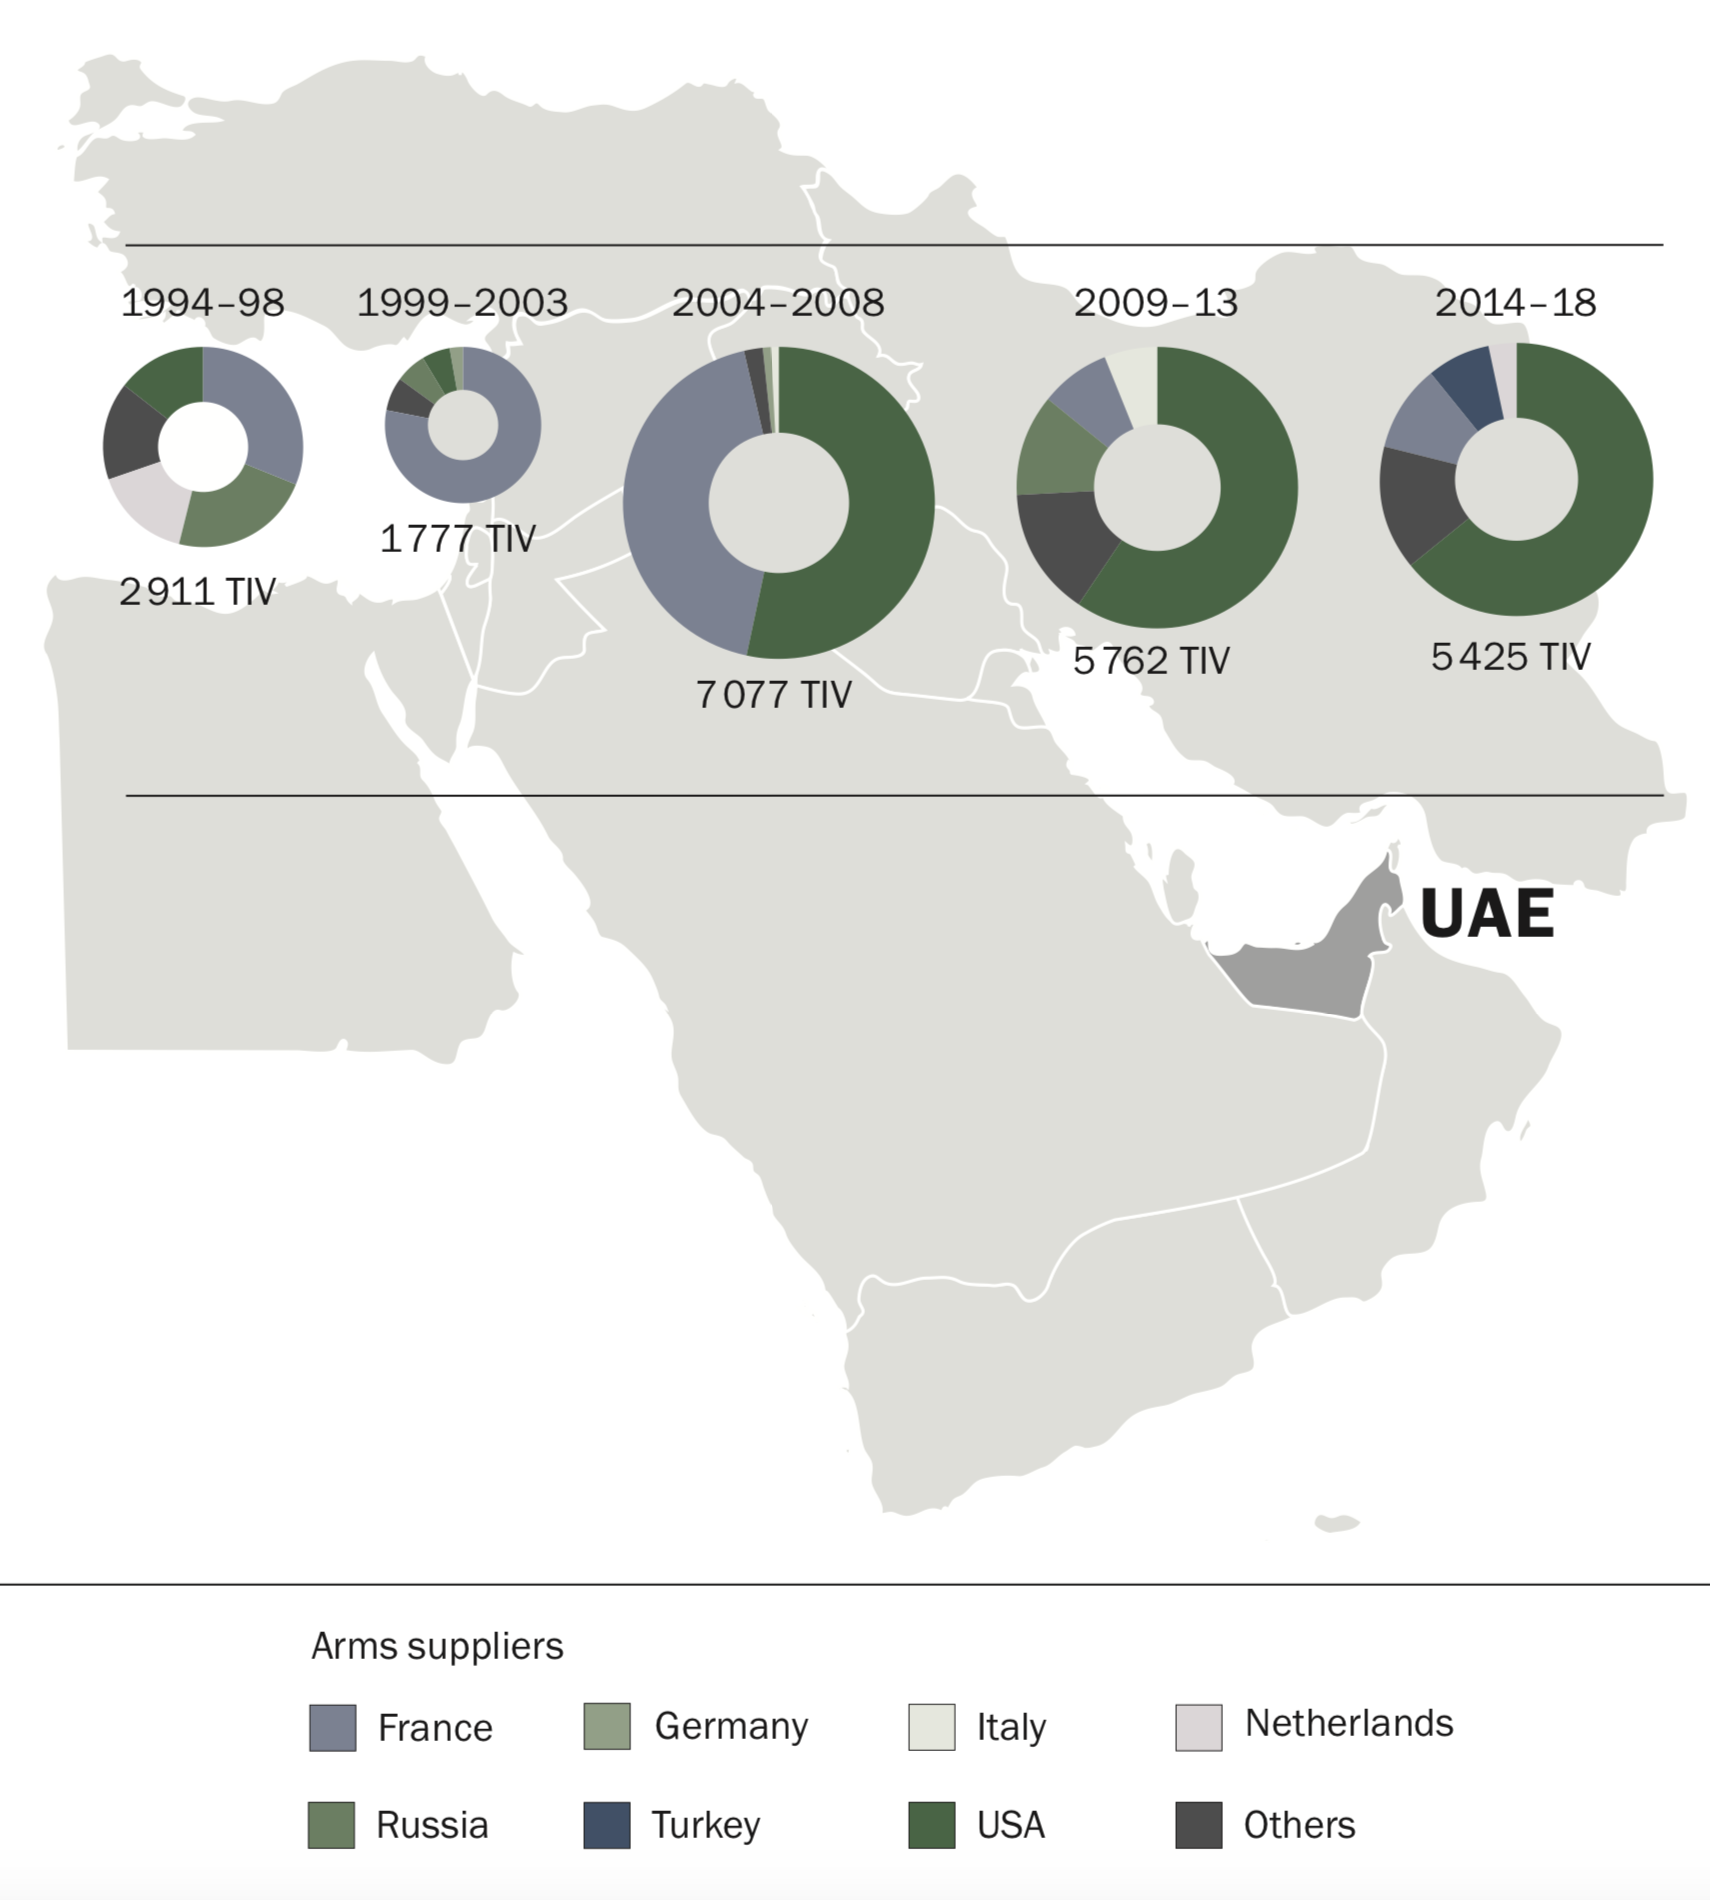 Military Spending and Arms Imports by Iran, Saudi Arabia